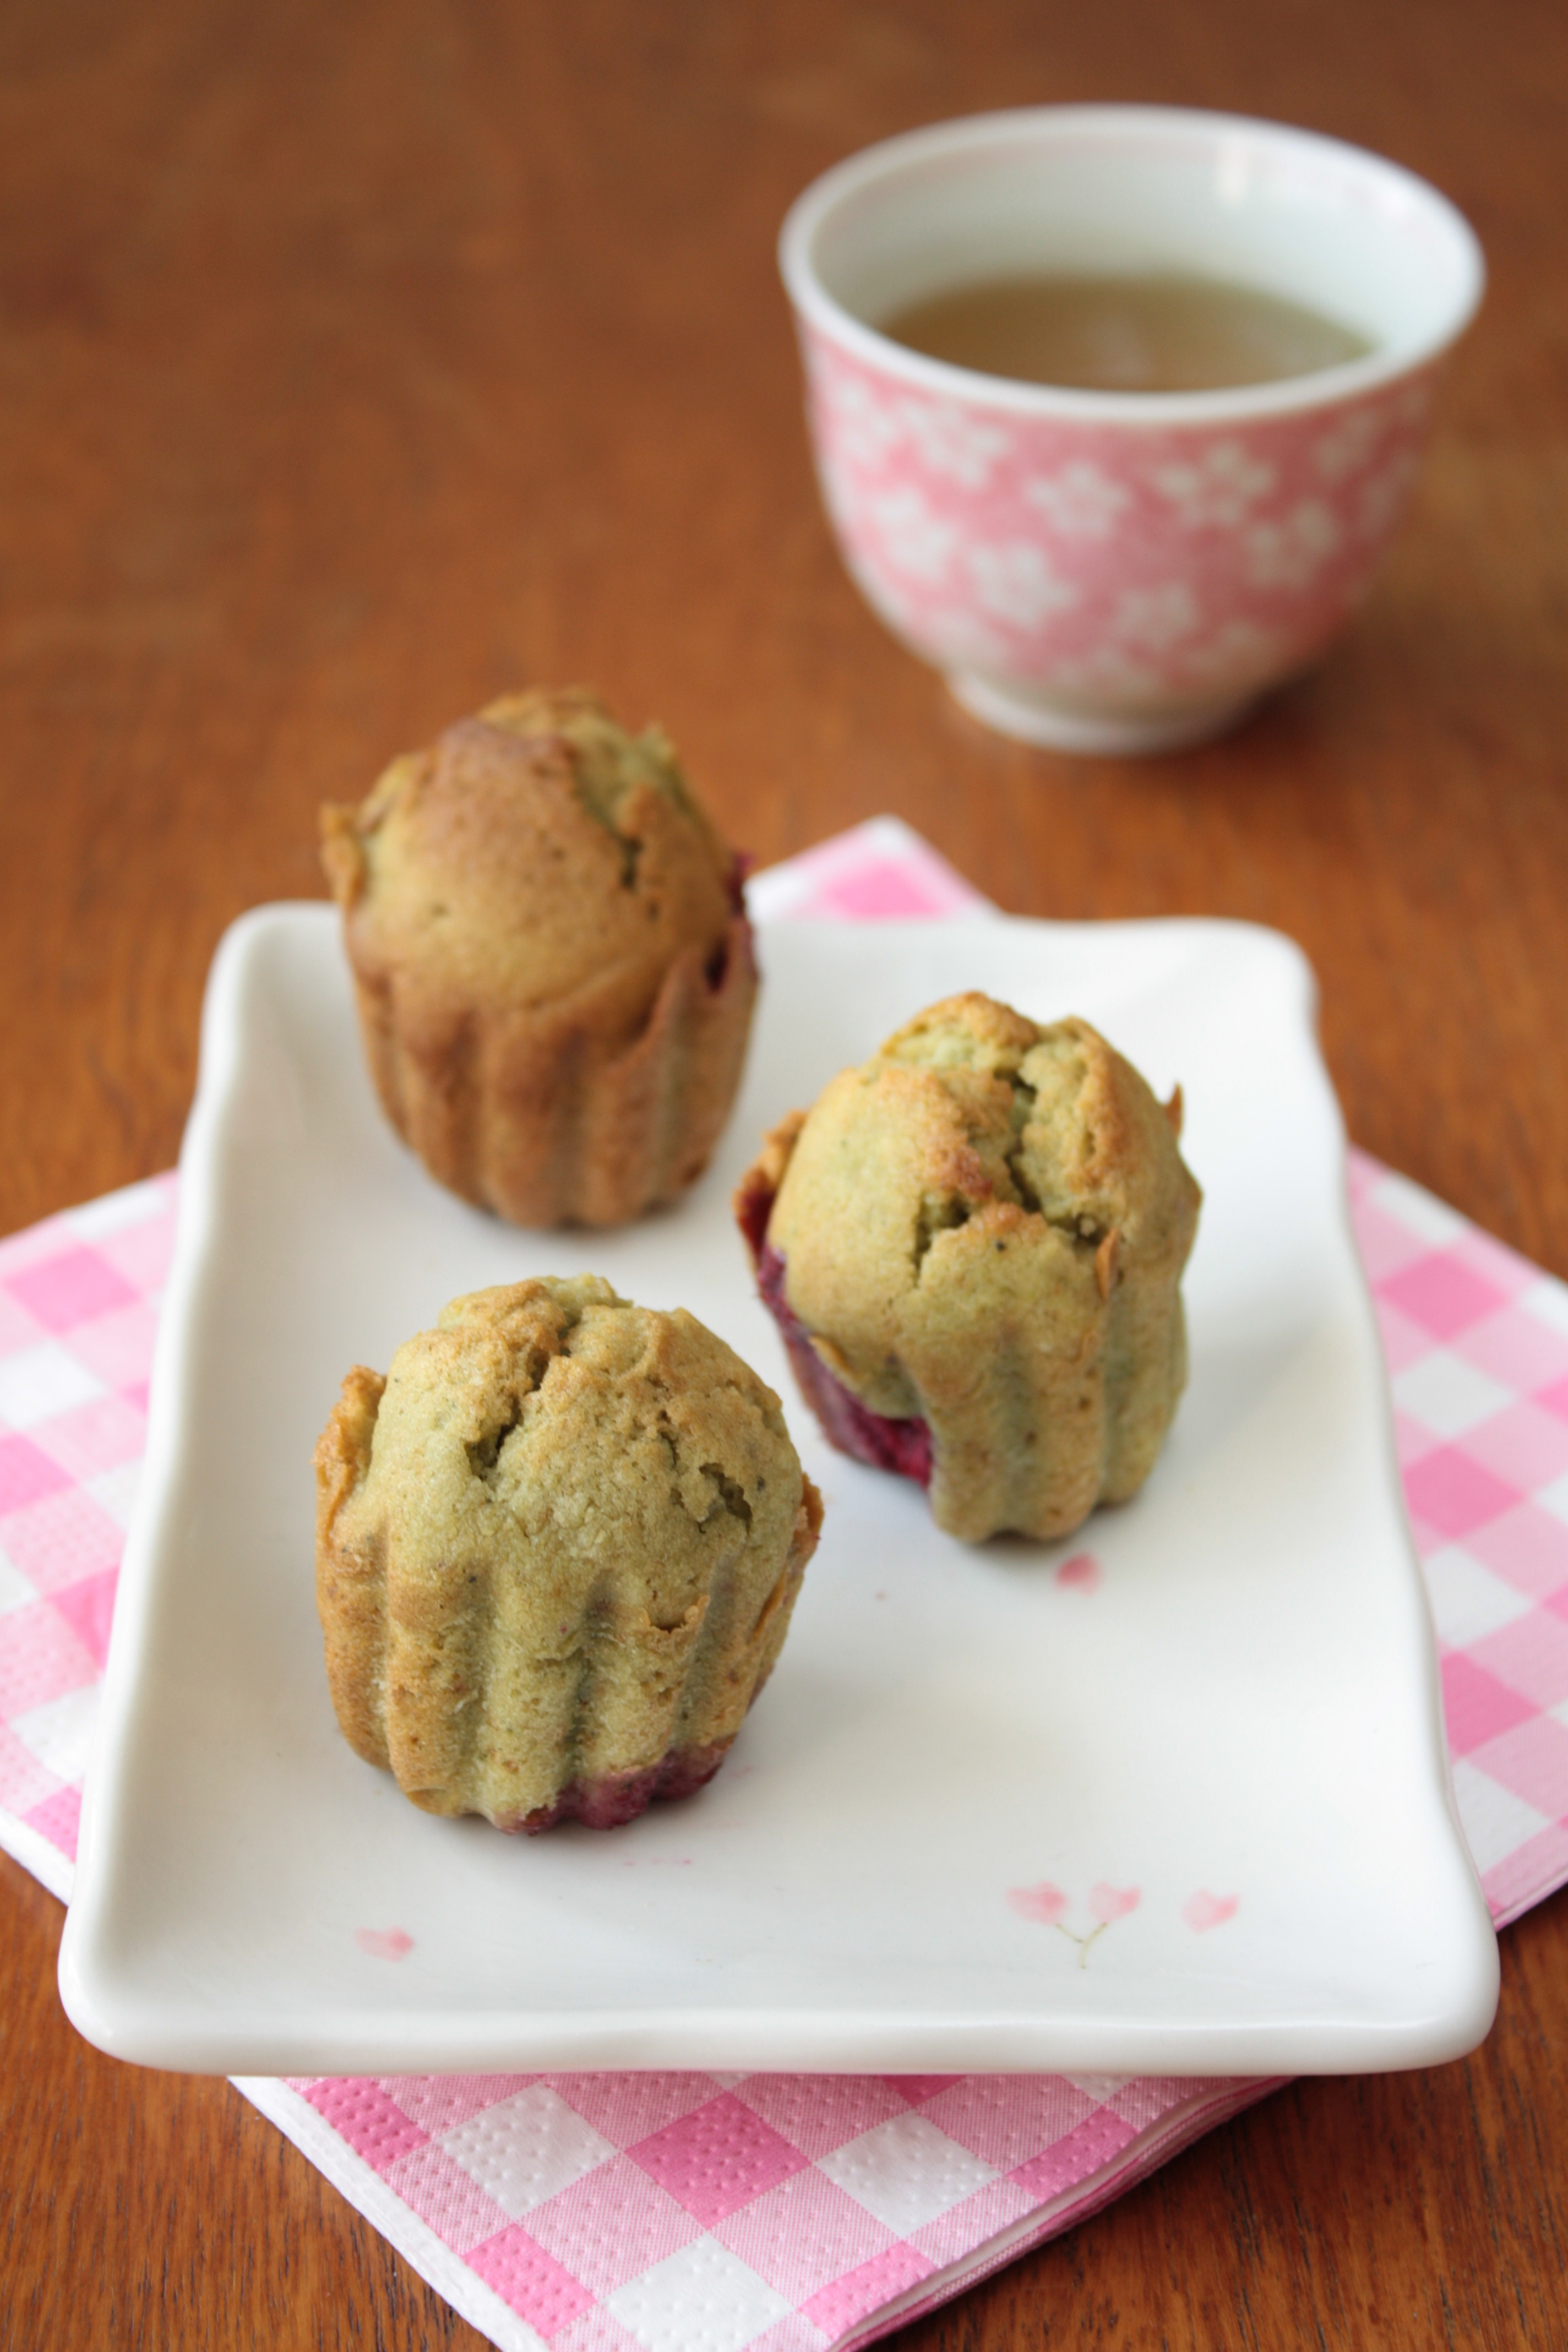 Matcha Green Tea Cakes